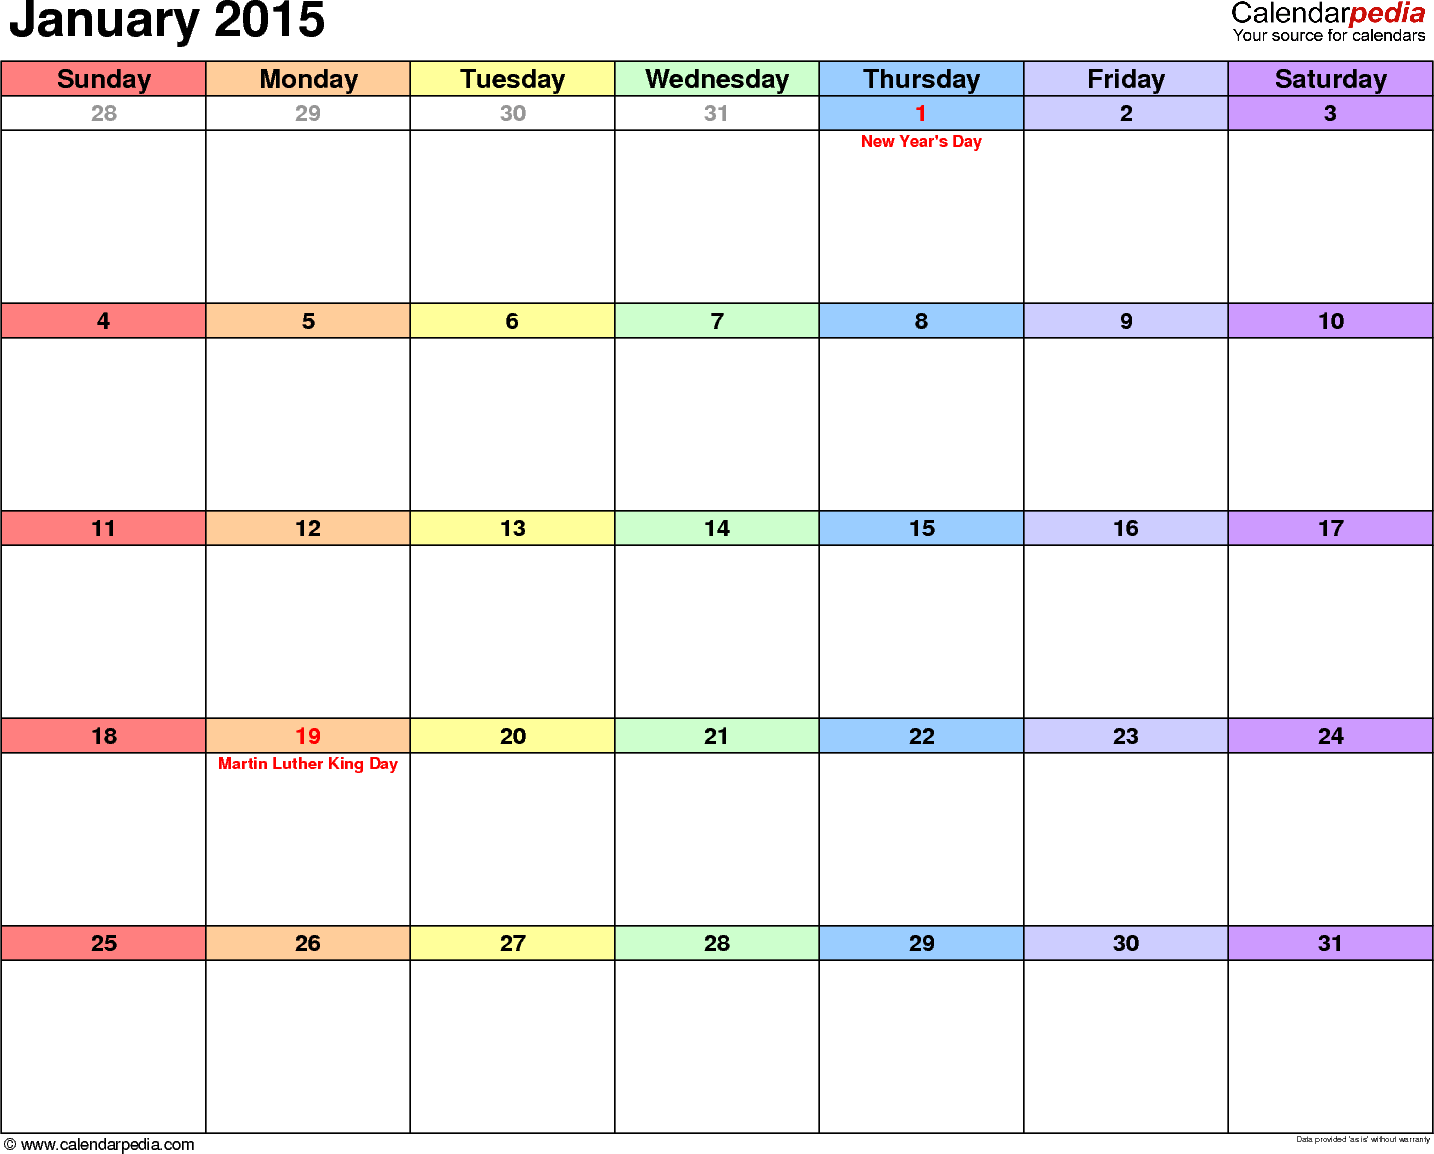 January 2015 calendar printable template